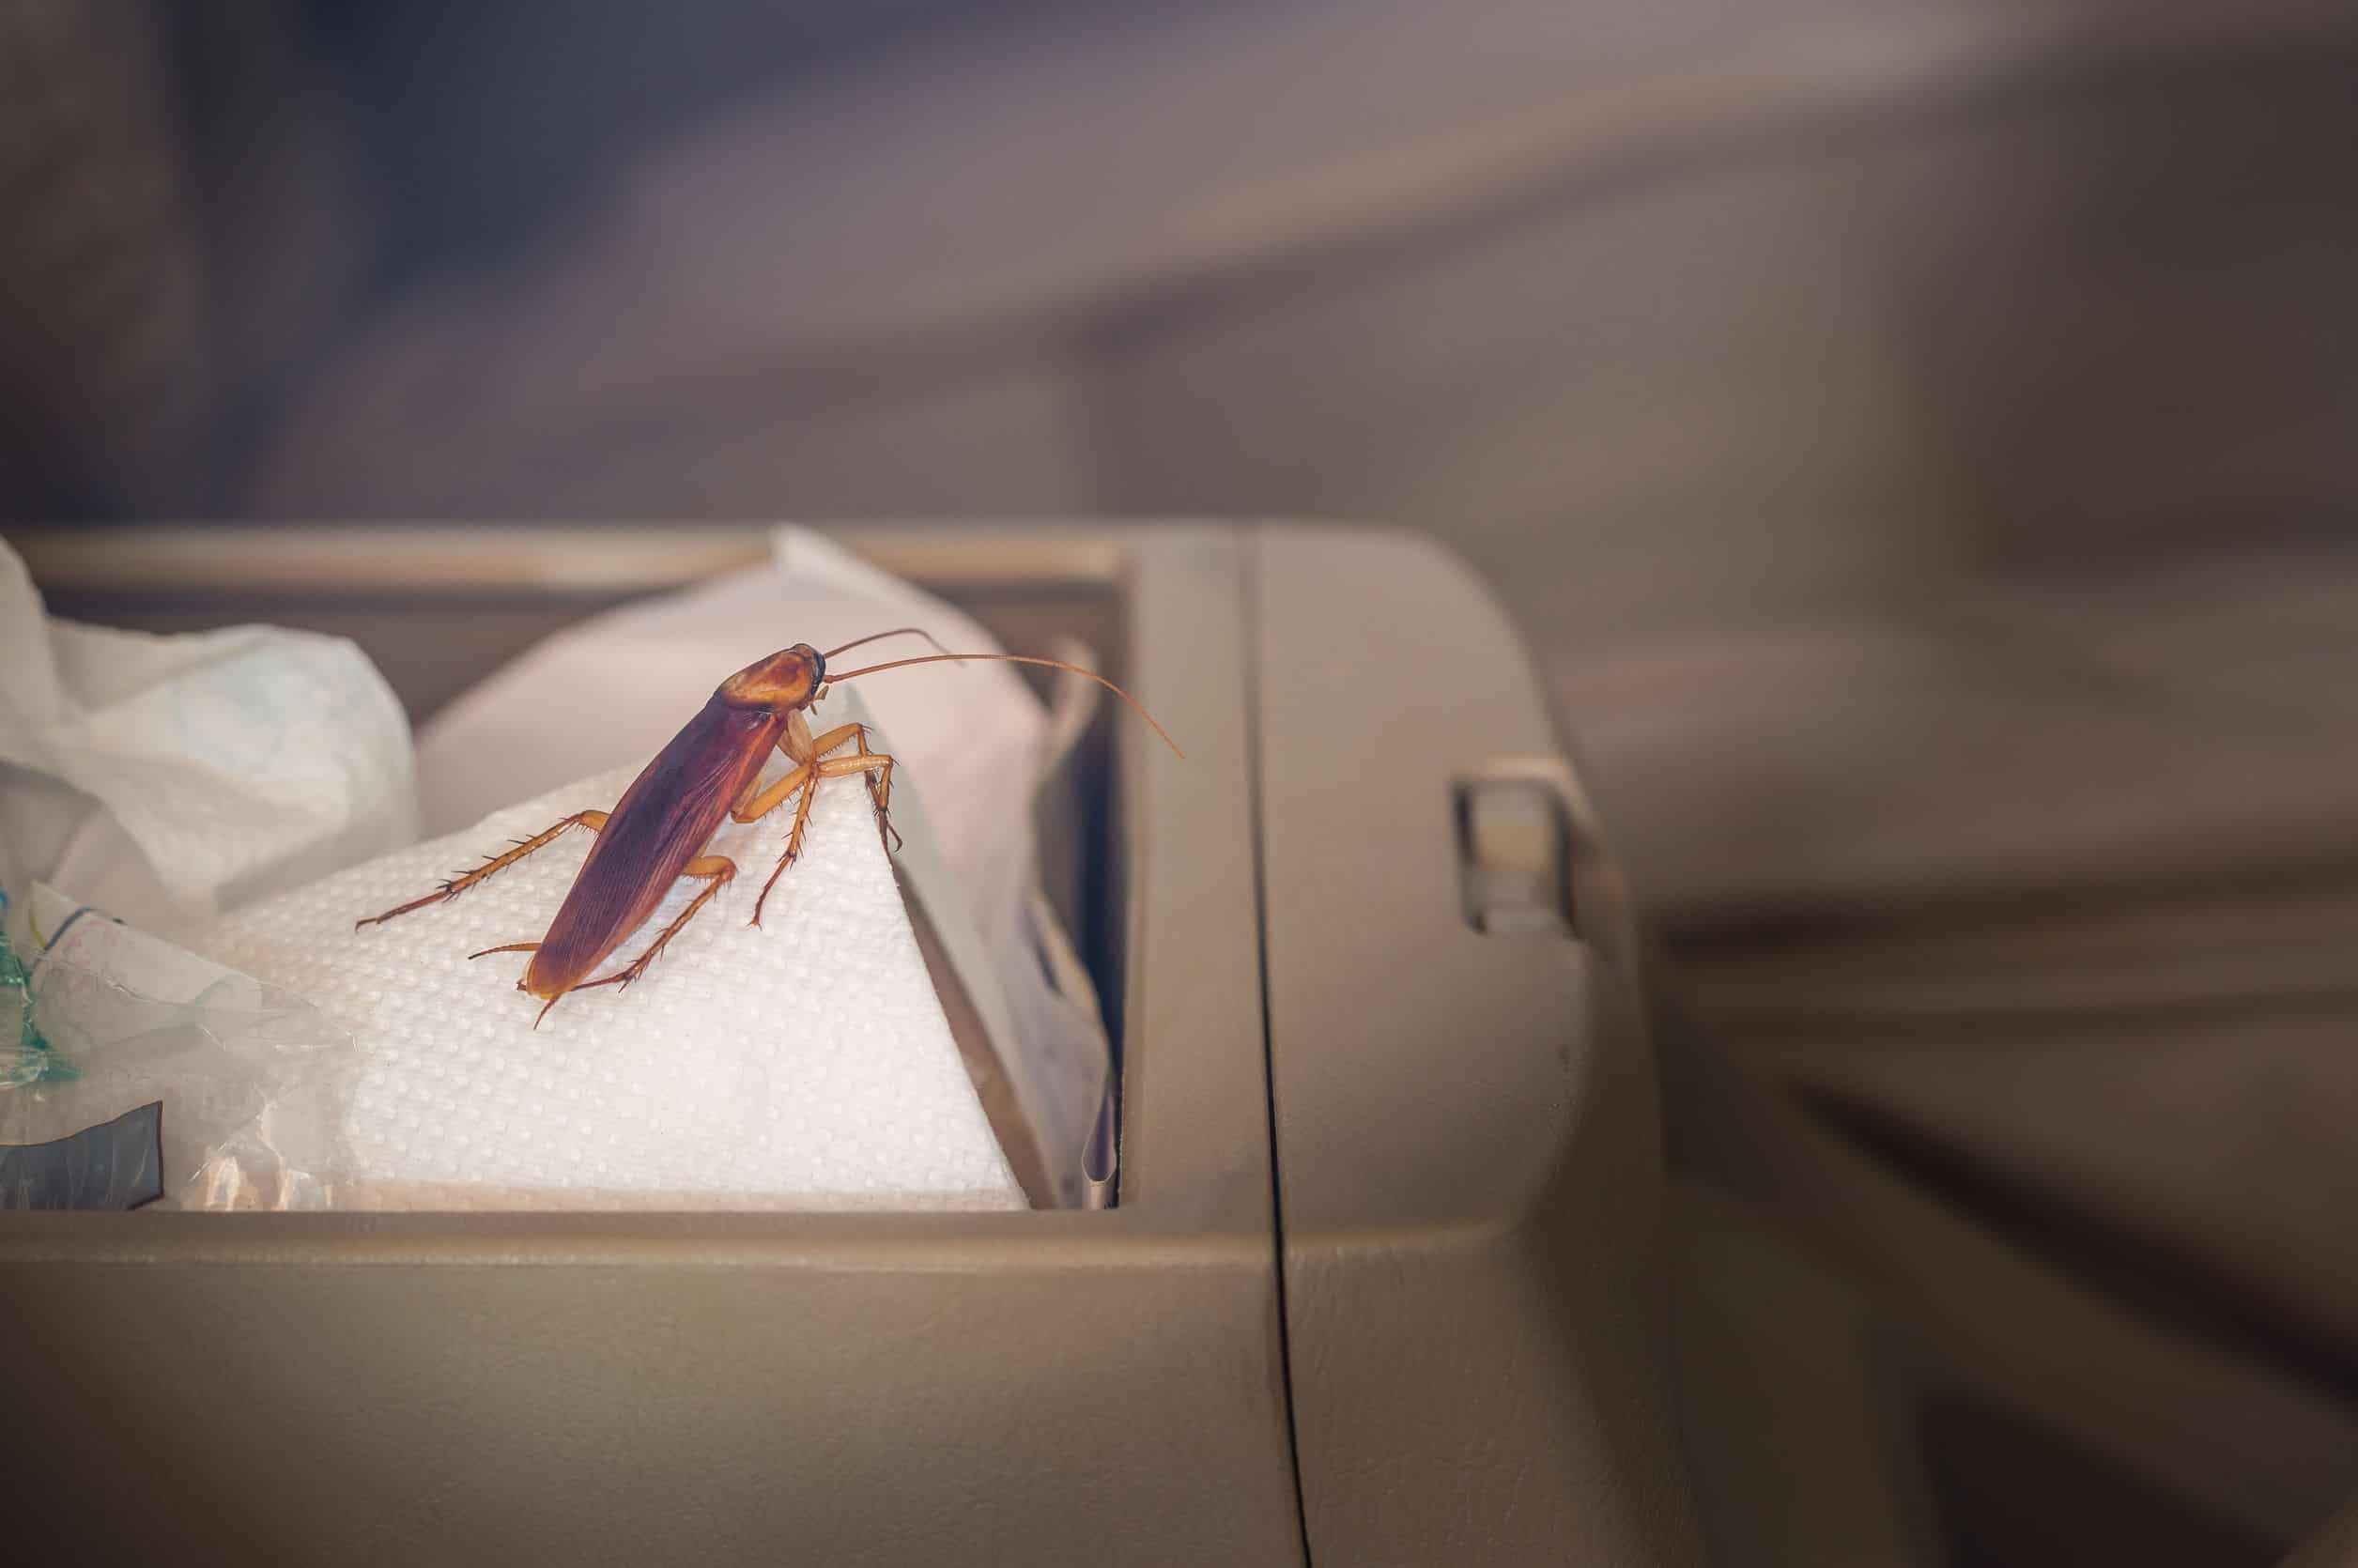 How to Get Rid of Roaches in Car Fast